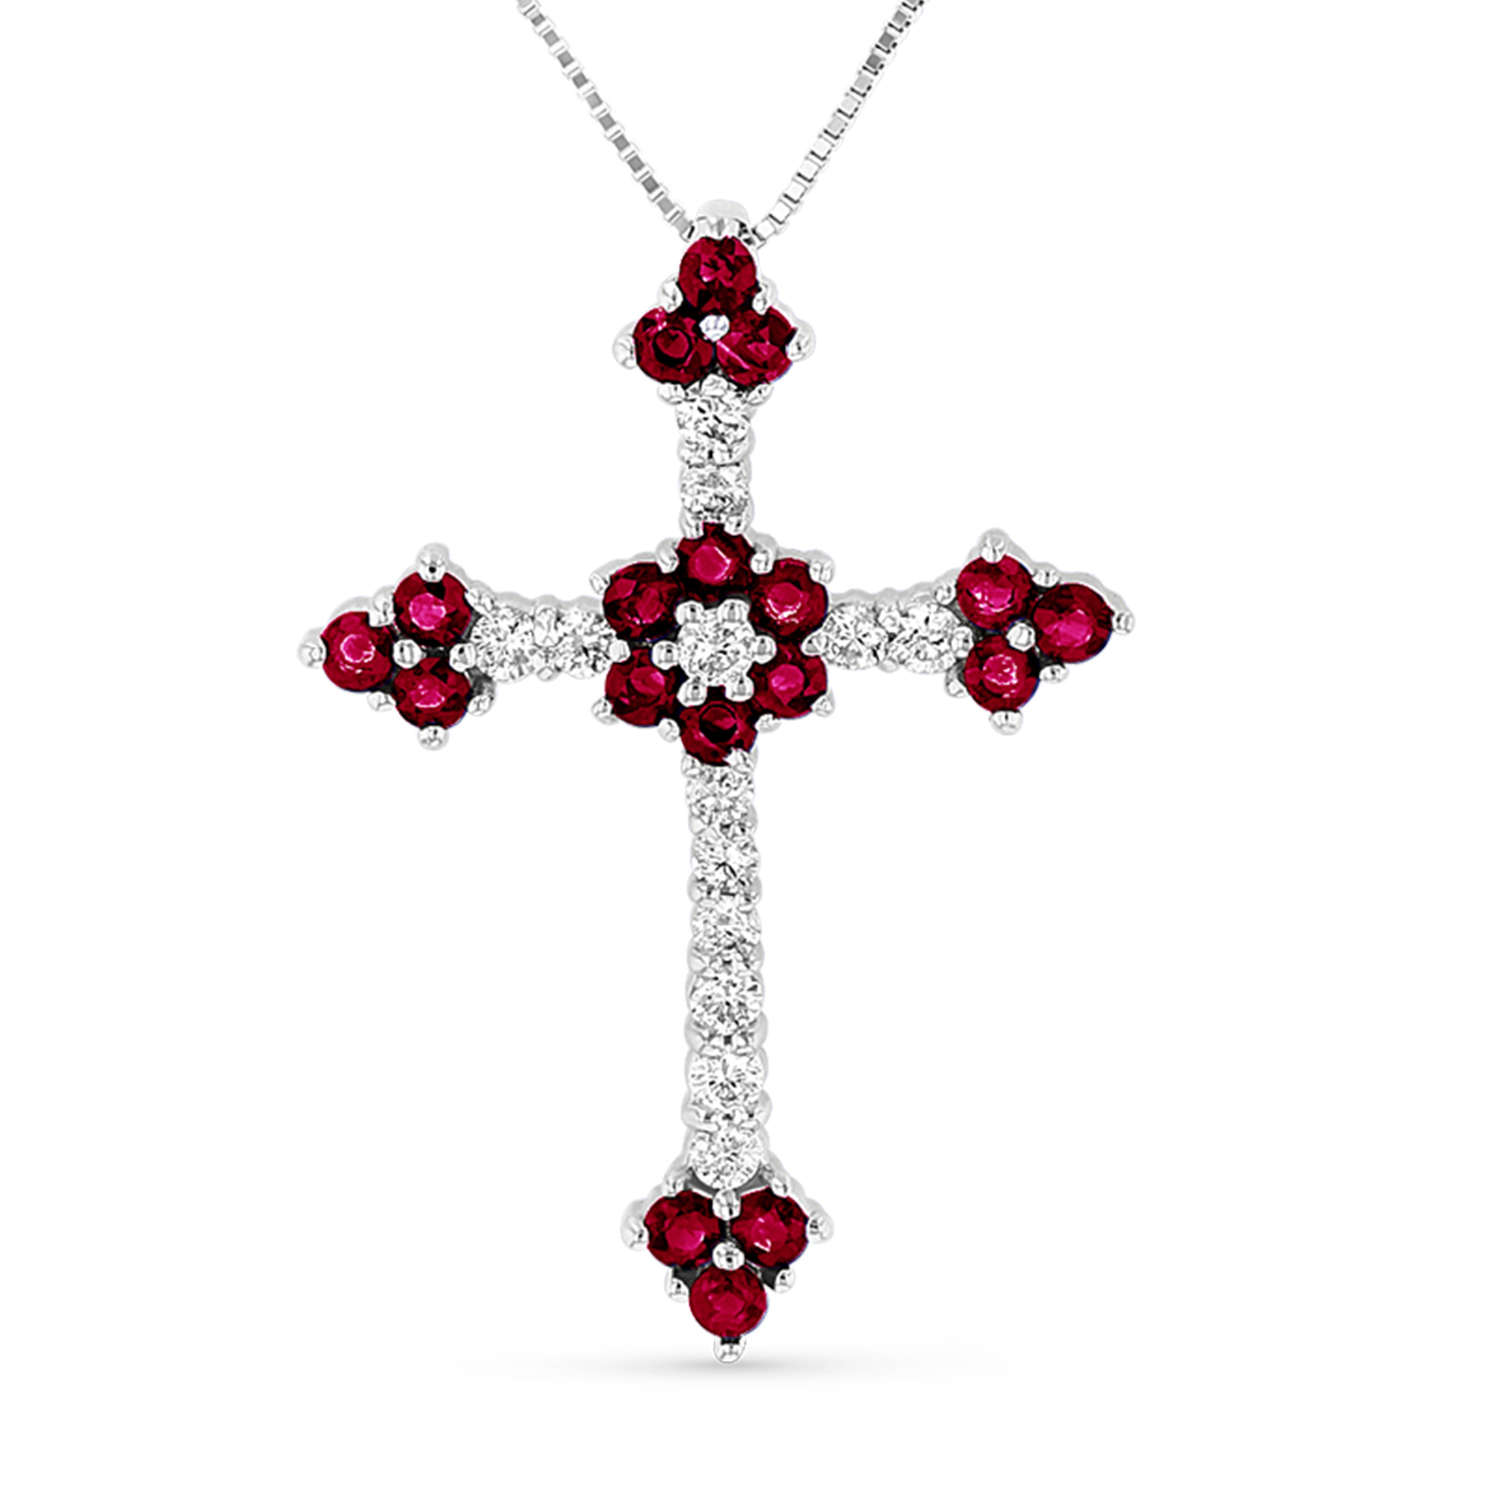 View 1.10ctw Diamond and Ruby Cross Pendantt in 14k White gold